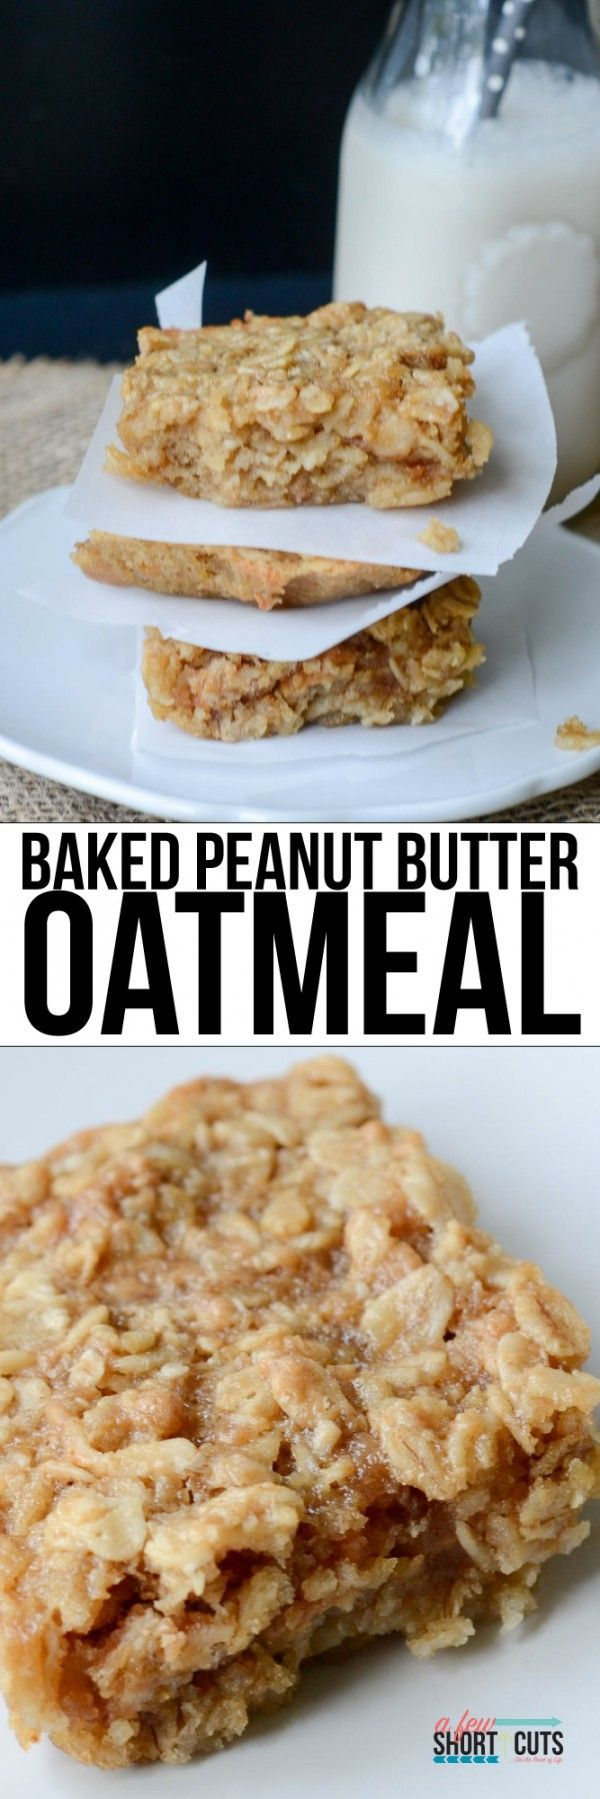 Get the recipe ♥ Baked Peanut Butter Oatmeal @recipes_to_go